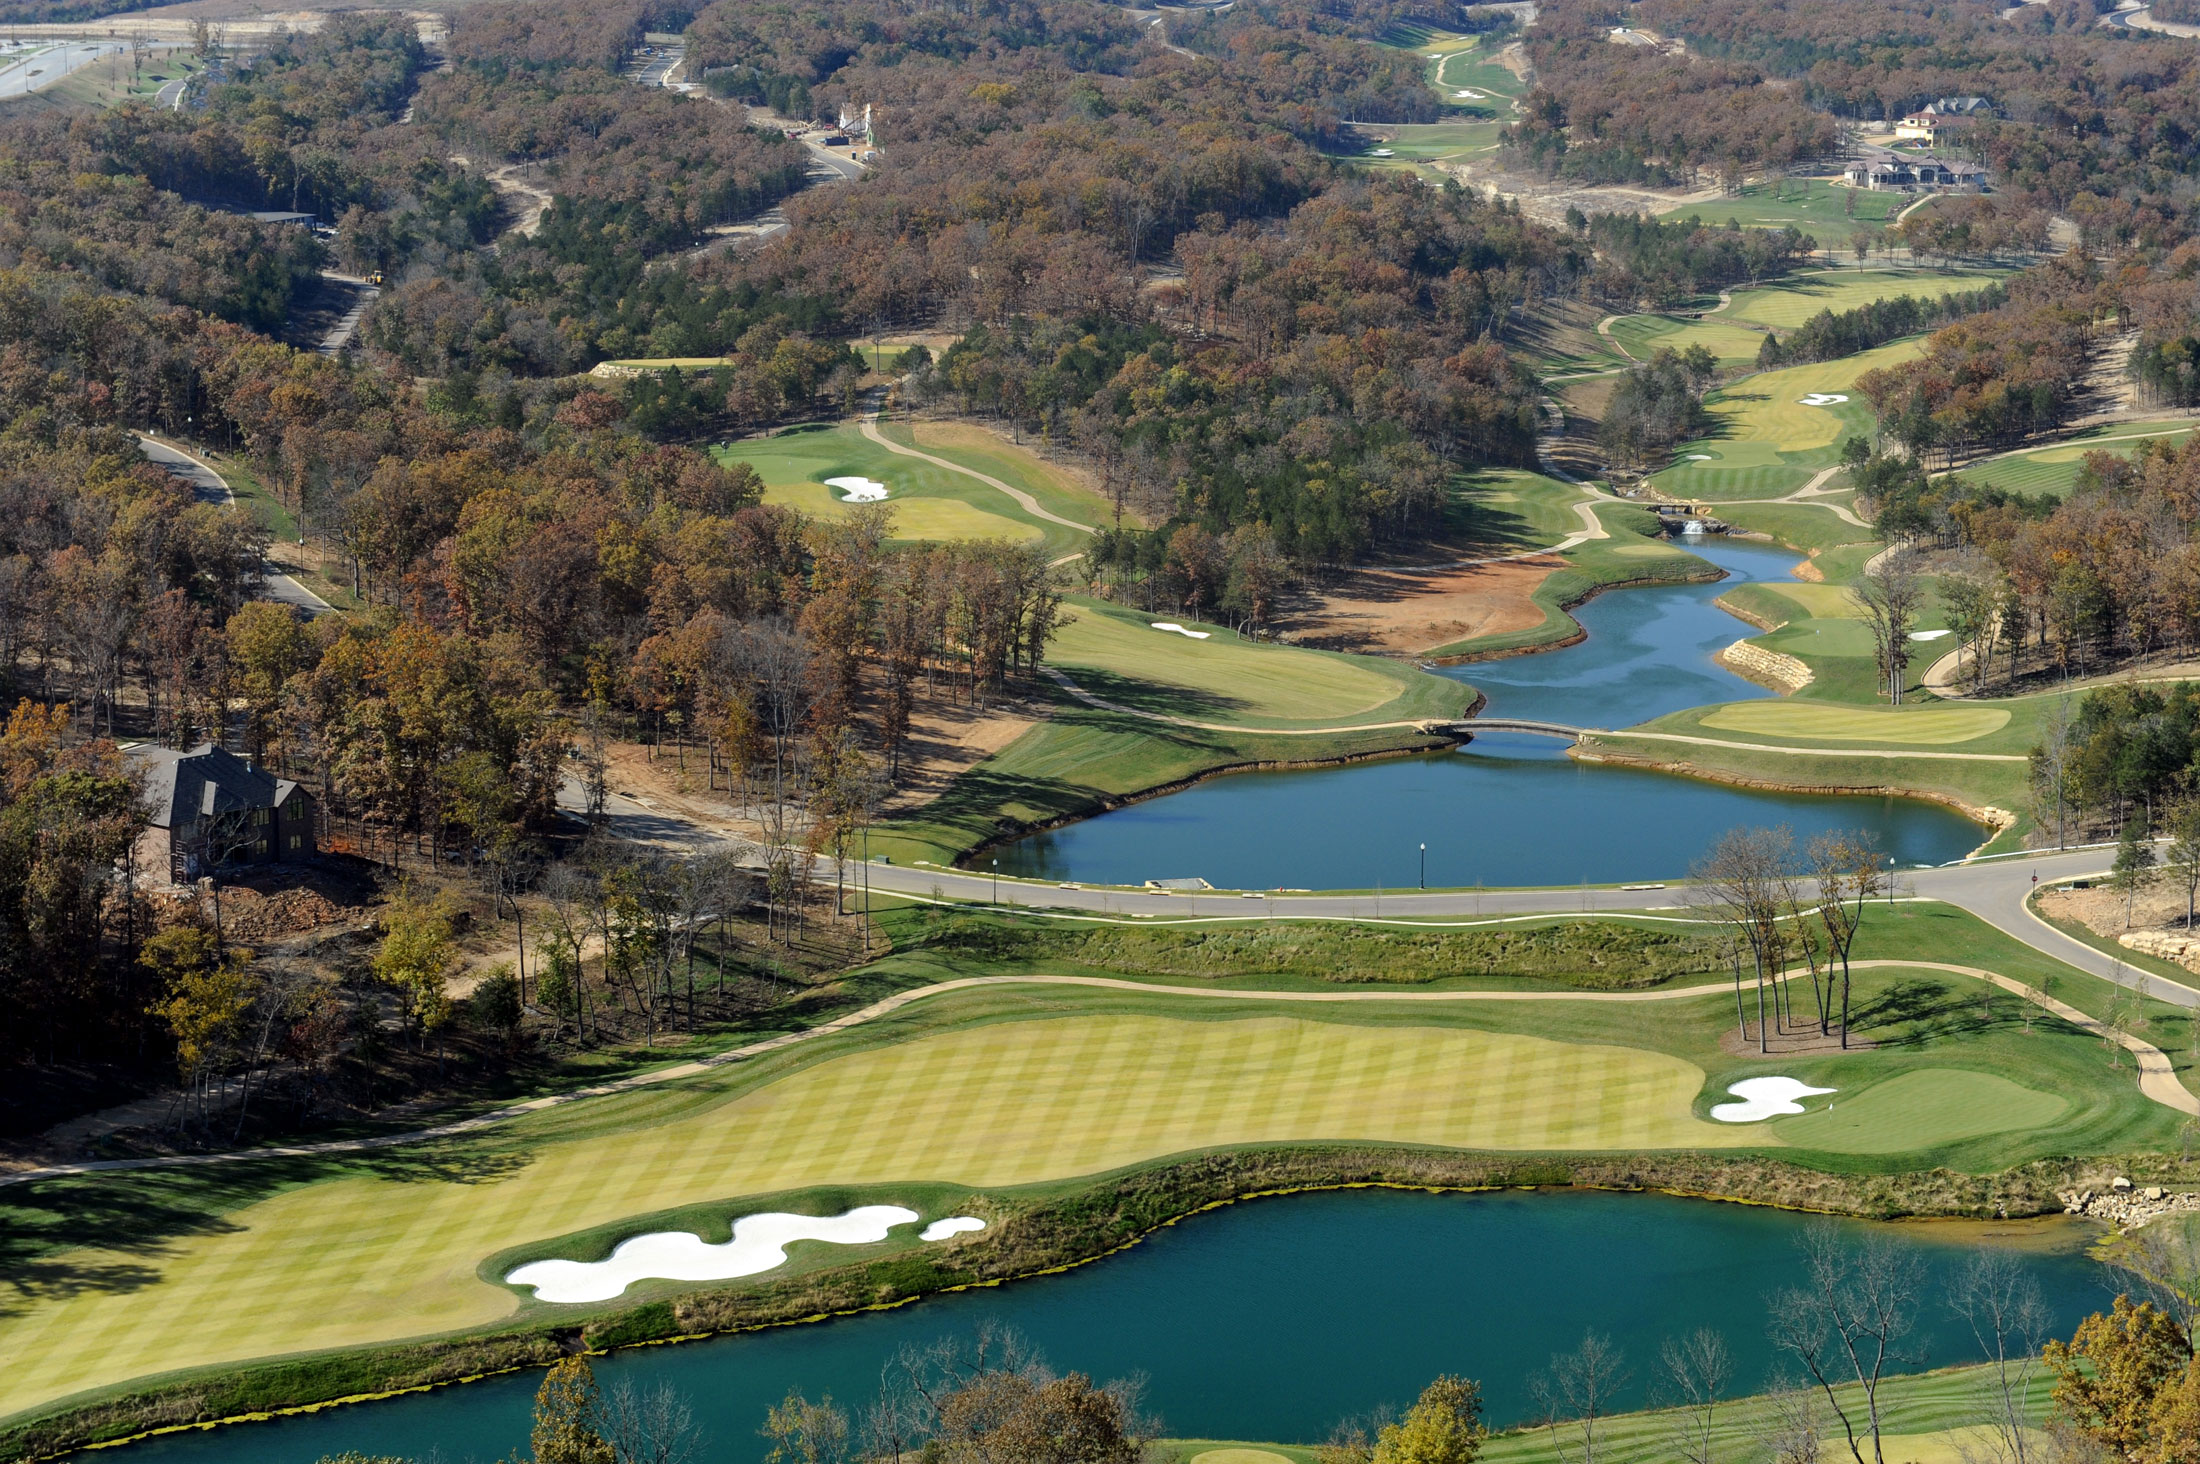 Payne Stewart Golf Club Aerial Course View